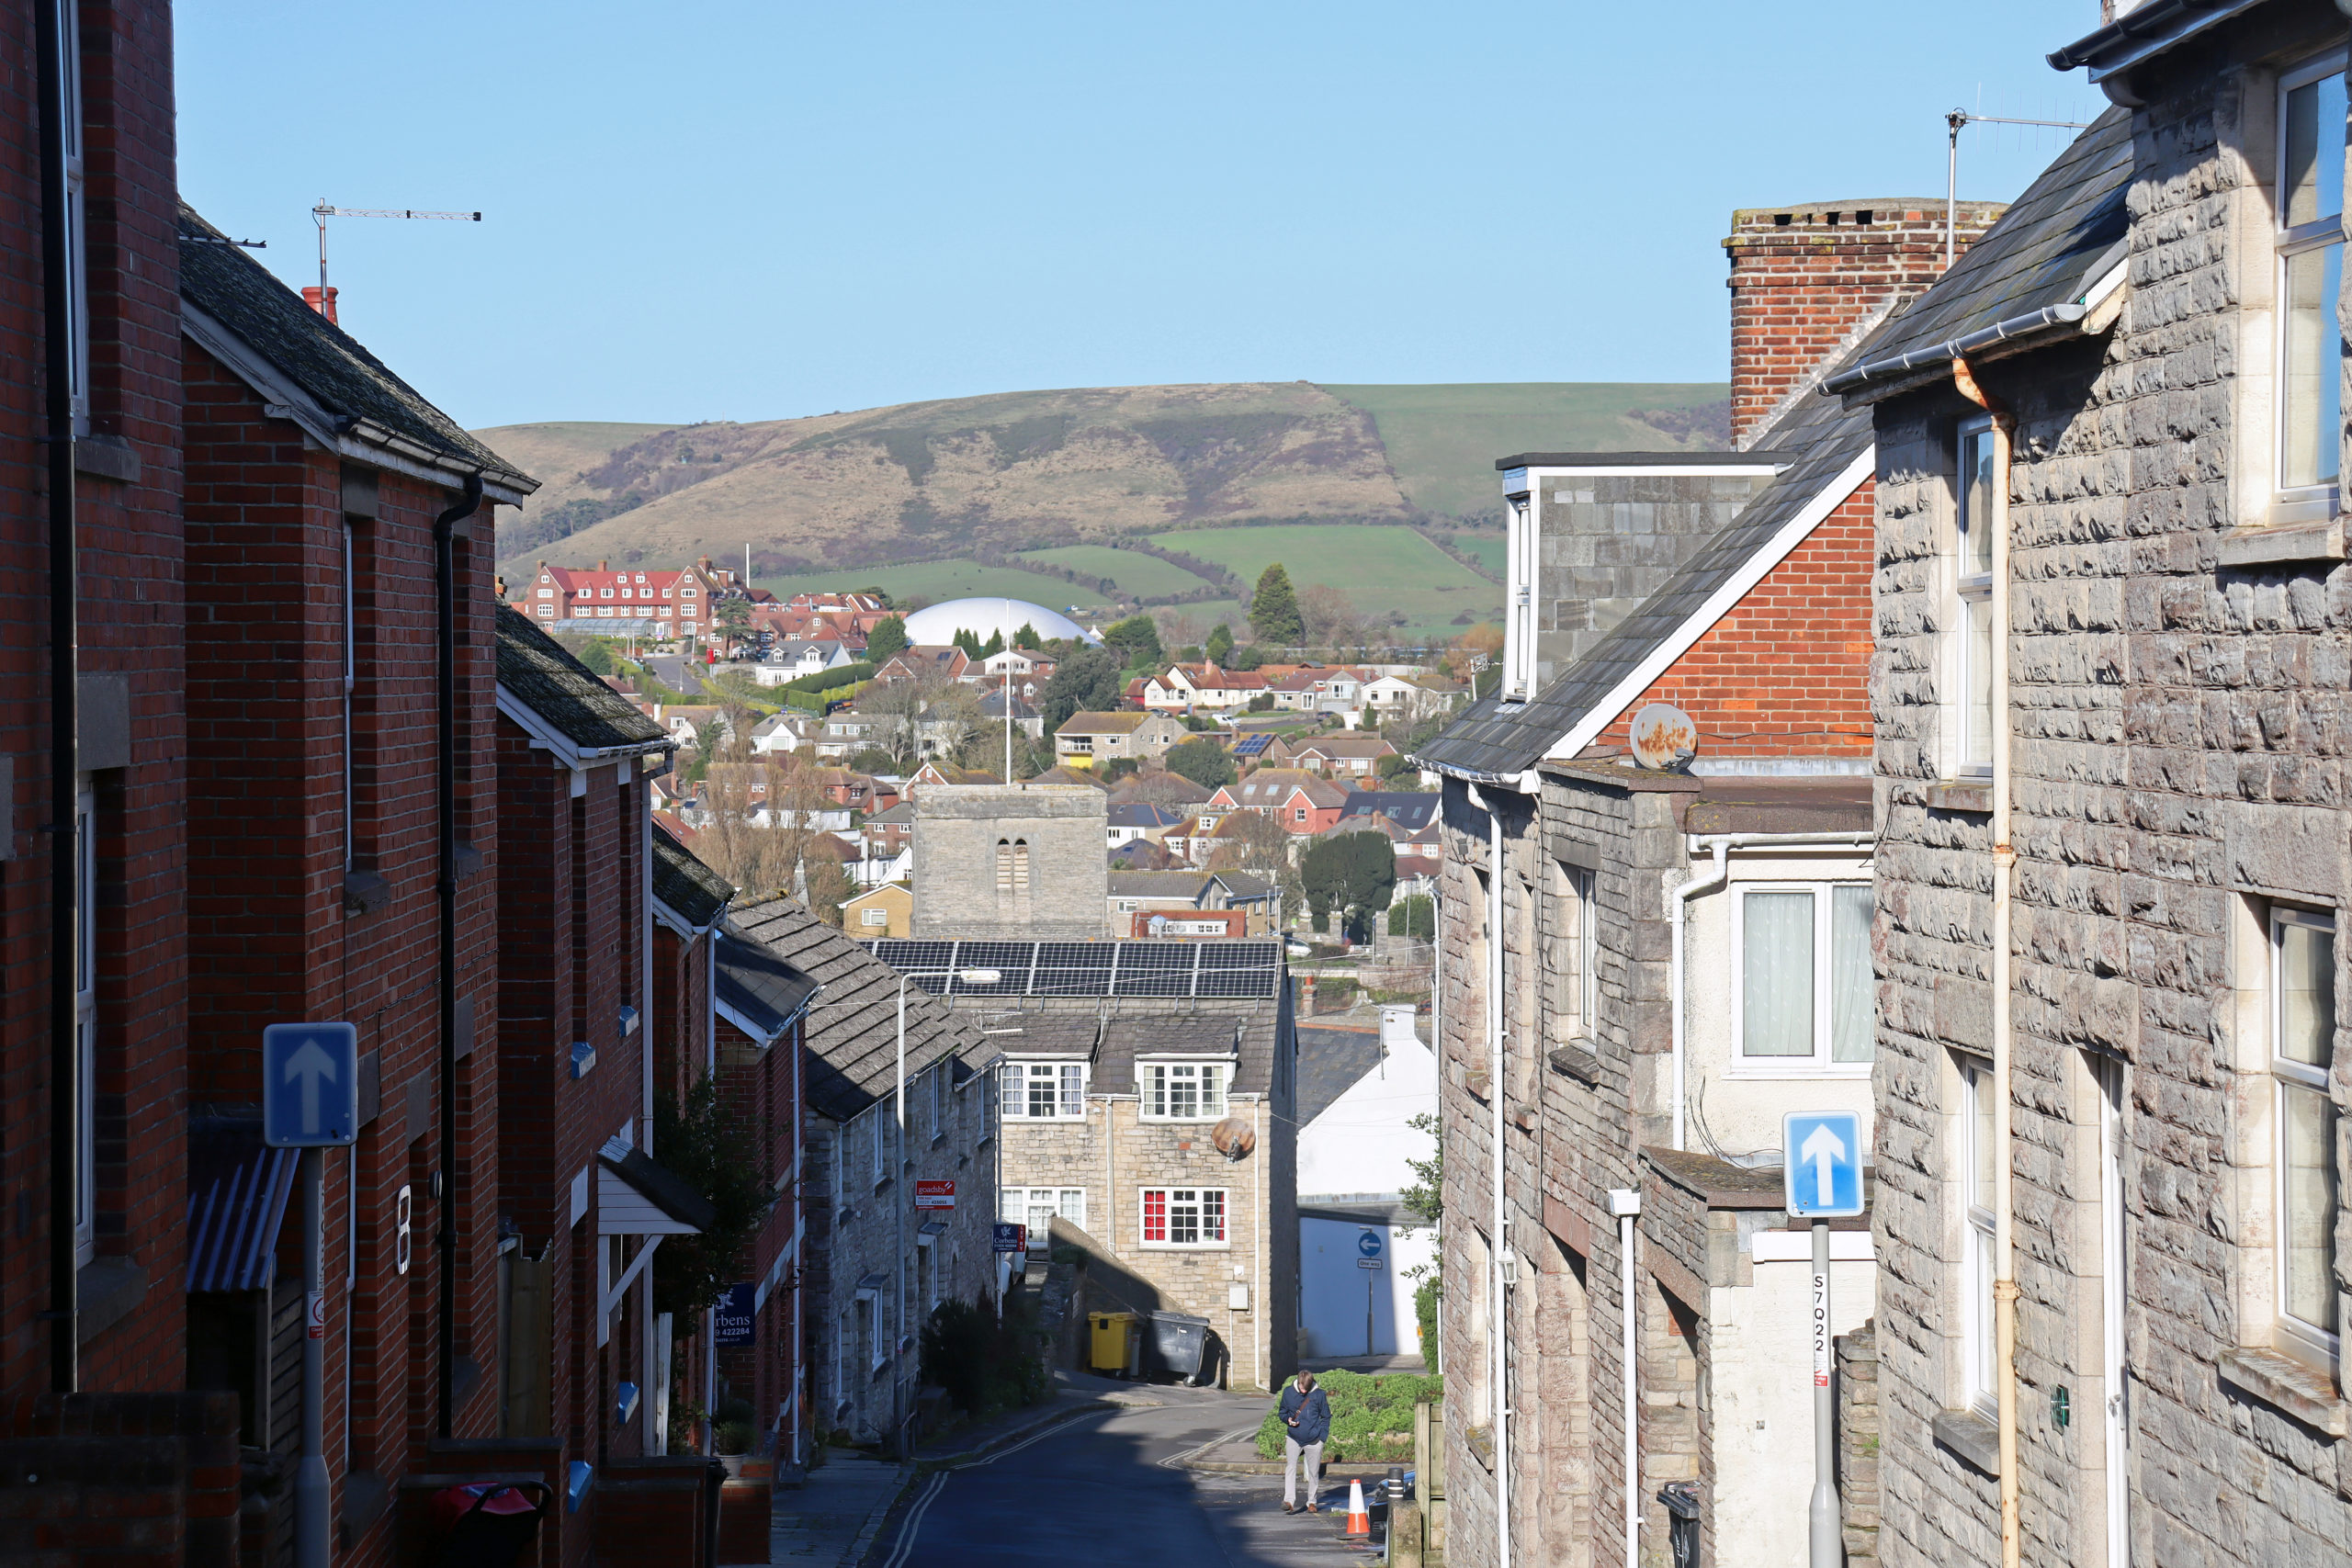 Street view towards Swanage town centre